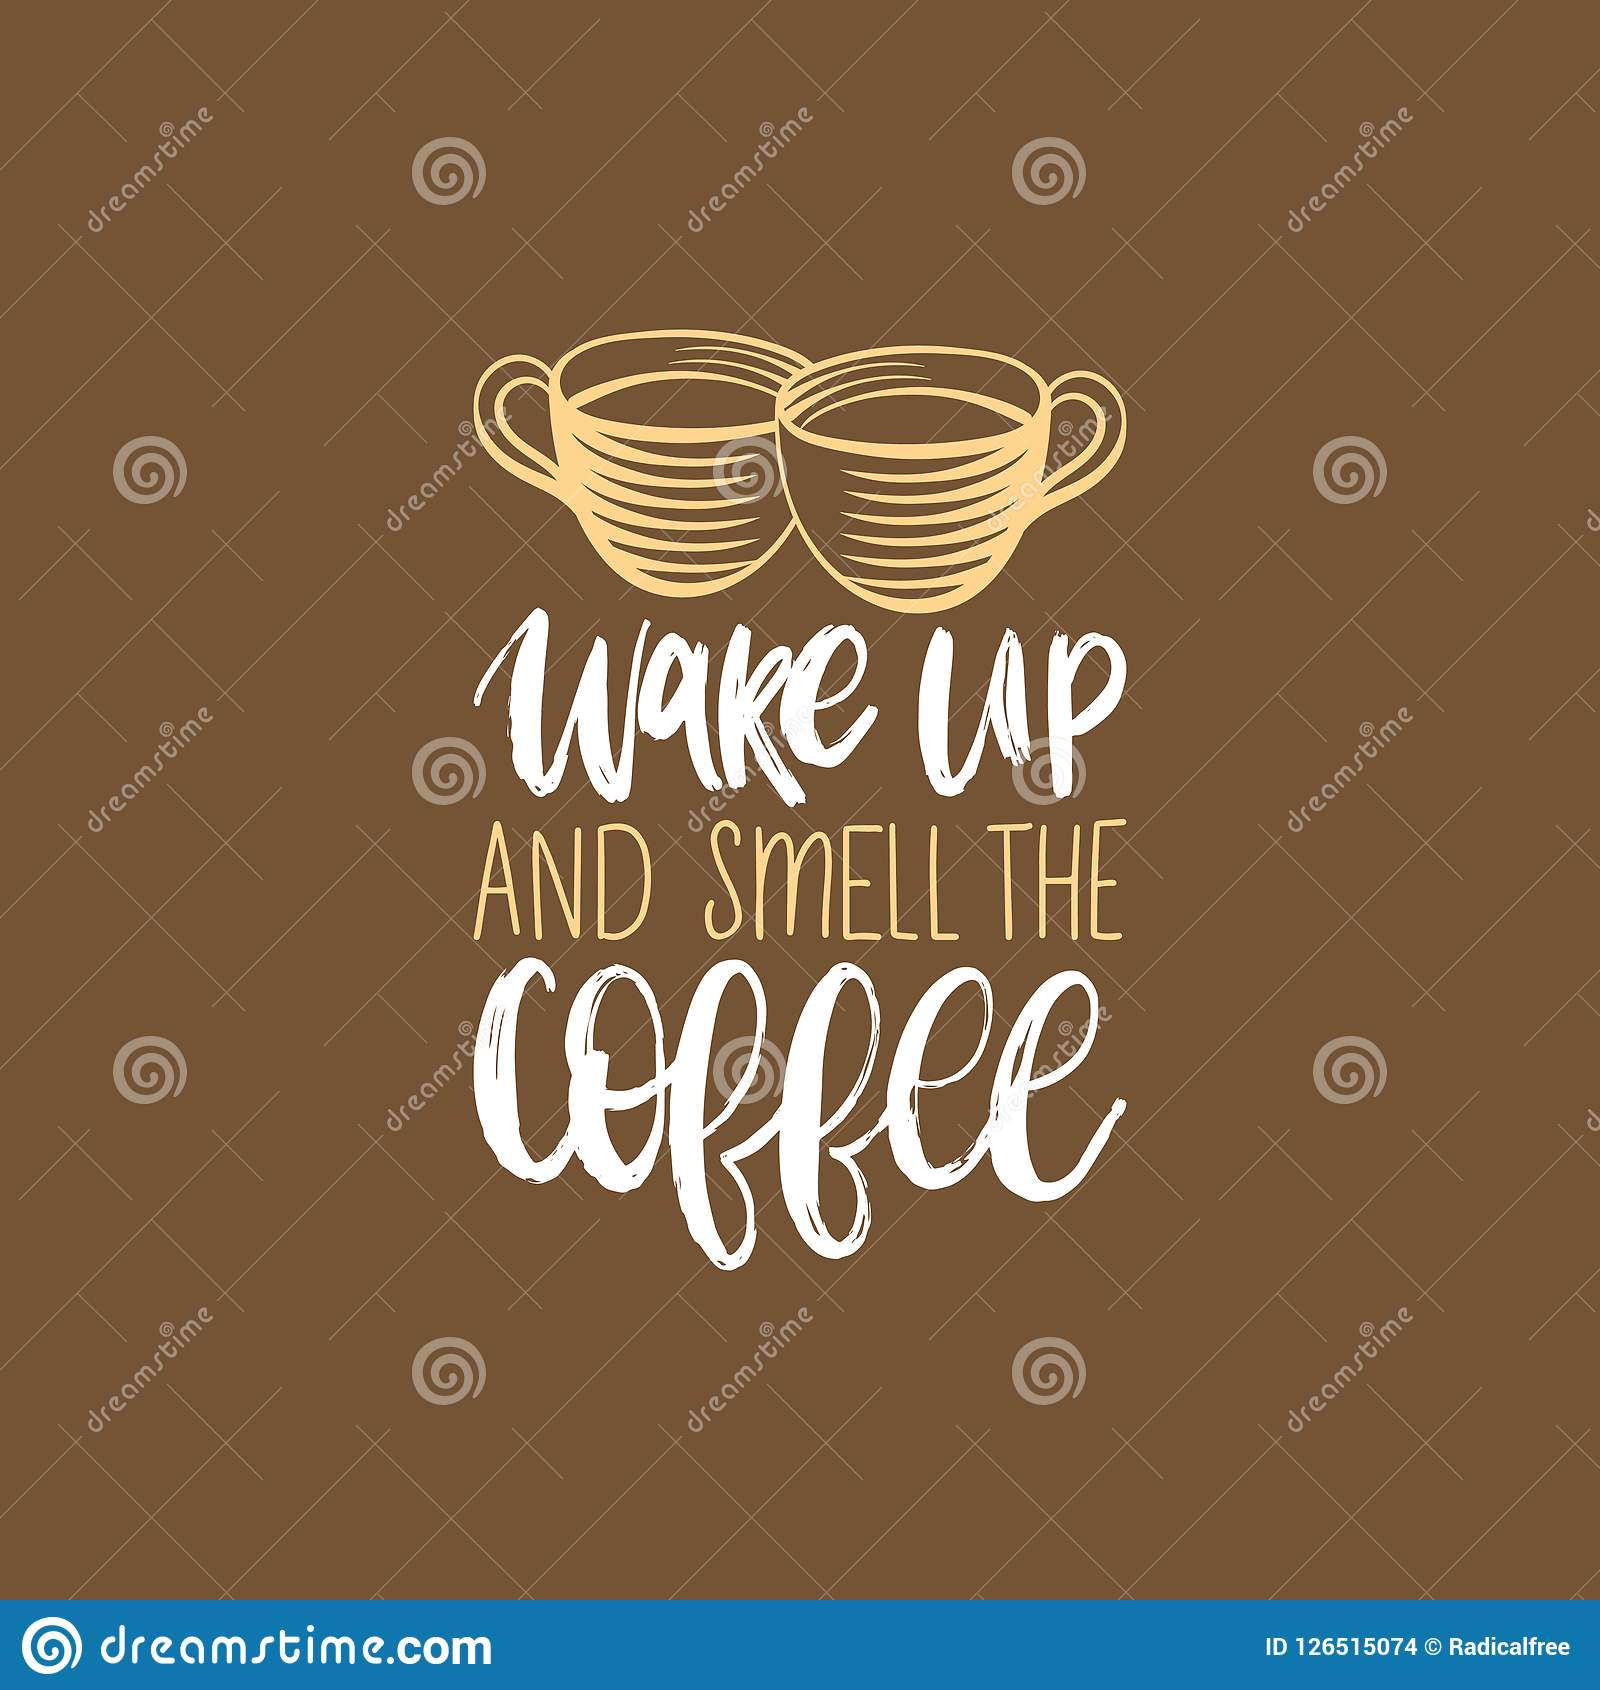 1b0fb0571fc Wake Up And Smell The Coffee, Vector Handwritten Phrase. Drawn Cups ...